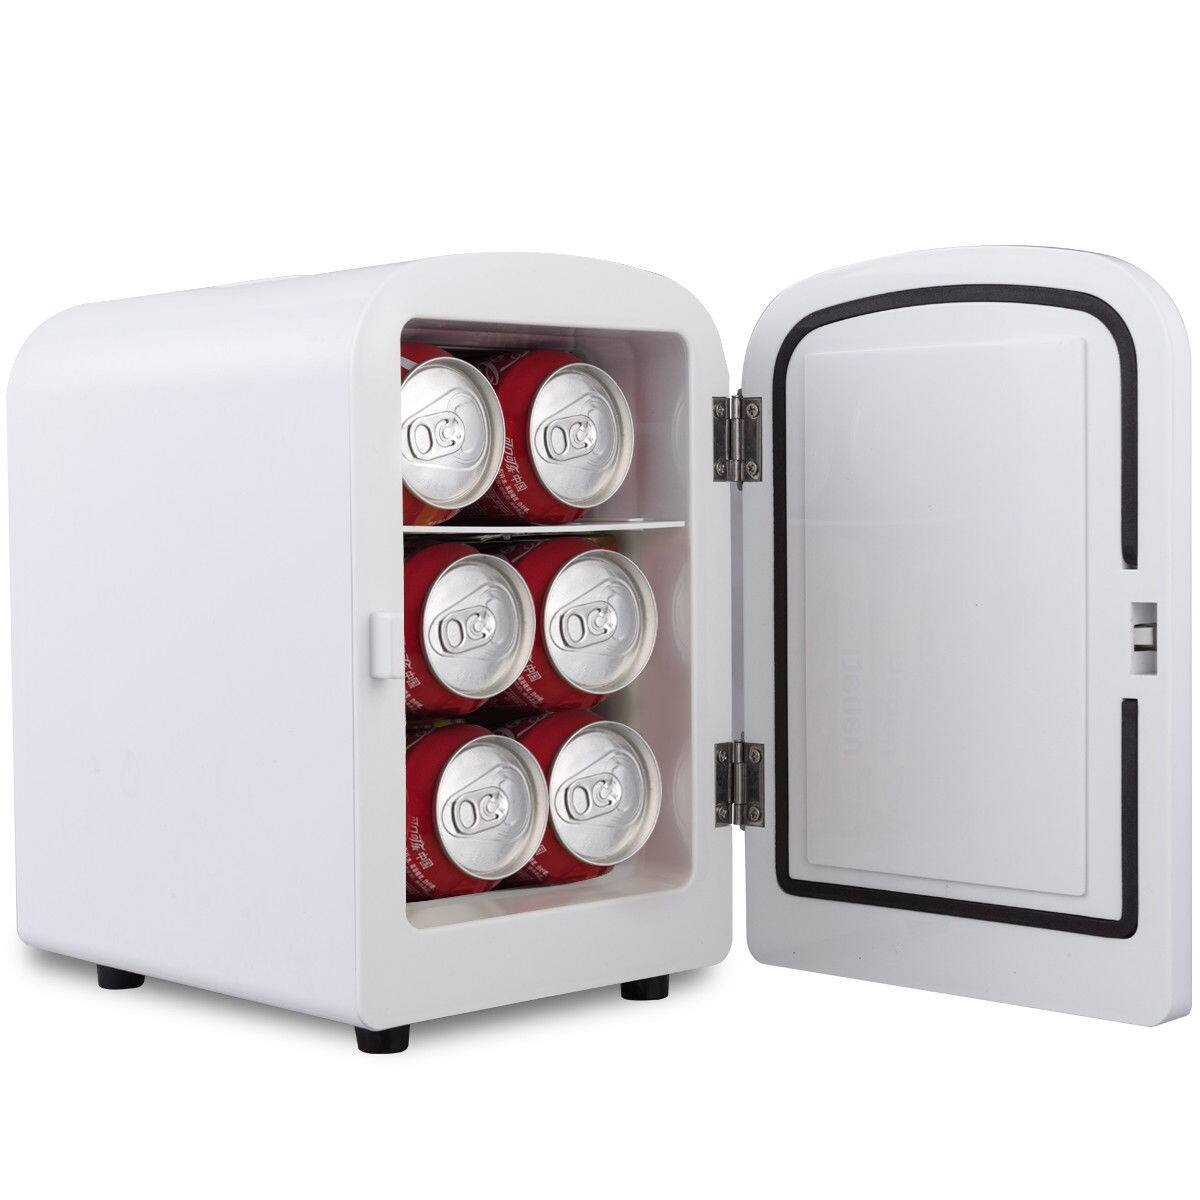 Costway 4 L Portable Cooler Mini Fridge $33.95 with Free Shipping